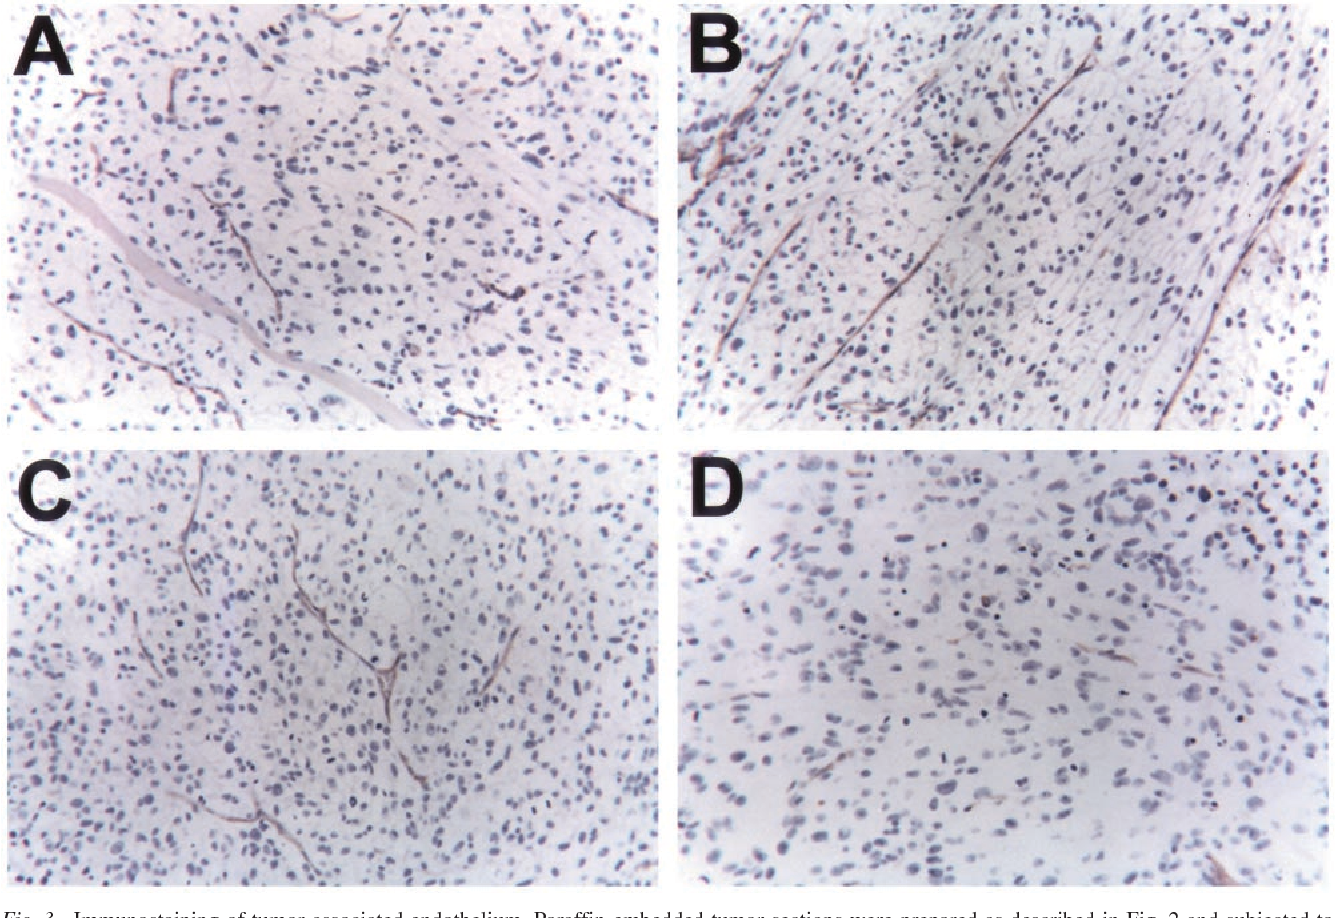 Fig. 3 Immunostaining of tumor-associated endothelium. Paraffin-embedded tumor sections were prepared as described in Fig. 2 and subjected to immunostaining with a goat polyclonal CD31-PECAM antibody. The stained slides were then photographed ( 40) using a Nikon Microphot-FX fluorescence microscope. A, control; B, rPRP-B treatment; C, ET-743 treatment; D, rPRP-B and ET-743 combination treatment.